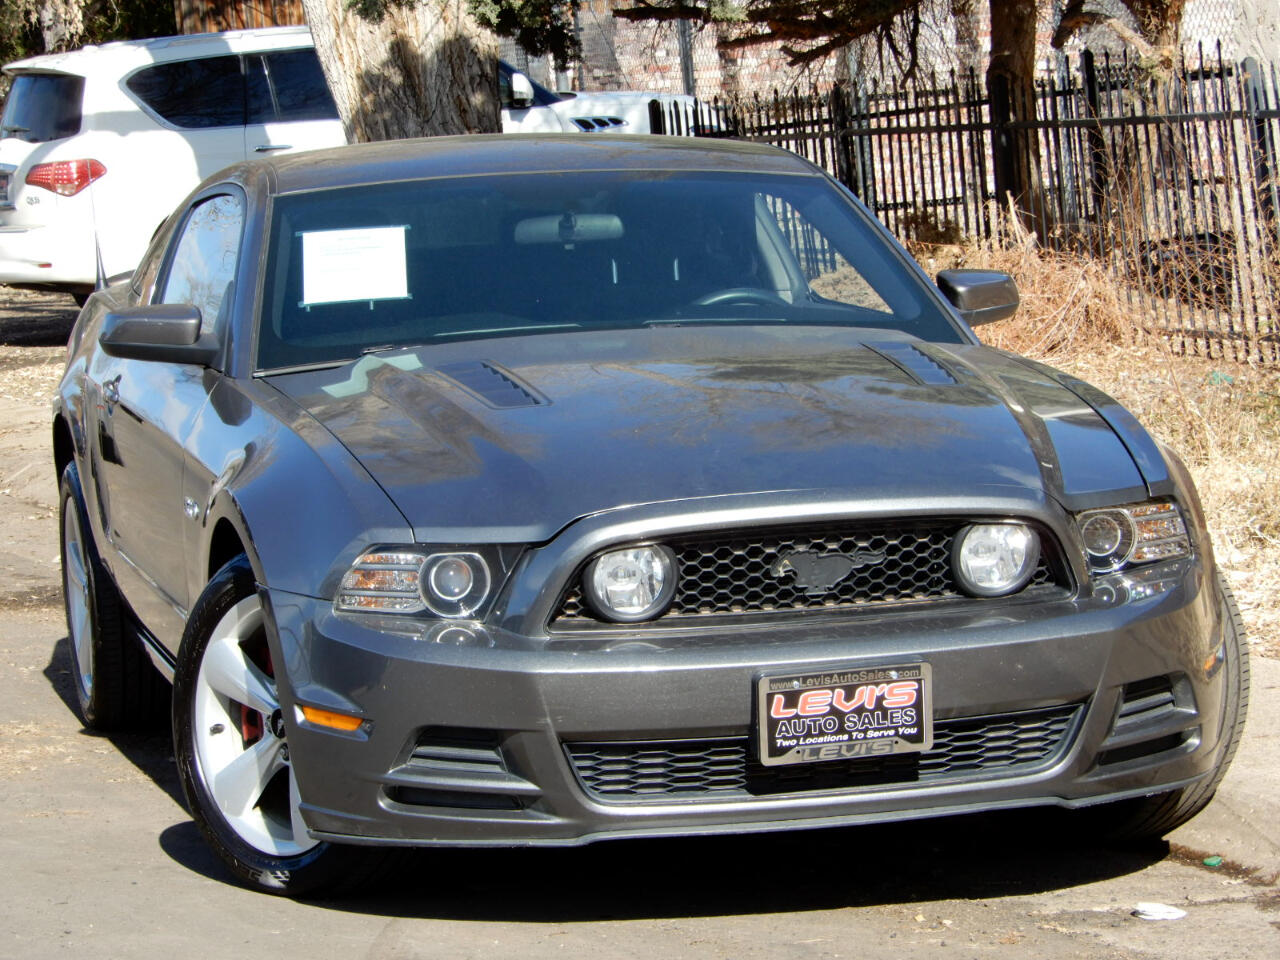 Ford Mustang GT Coupe 2014